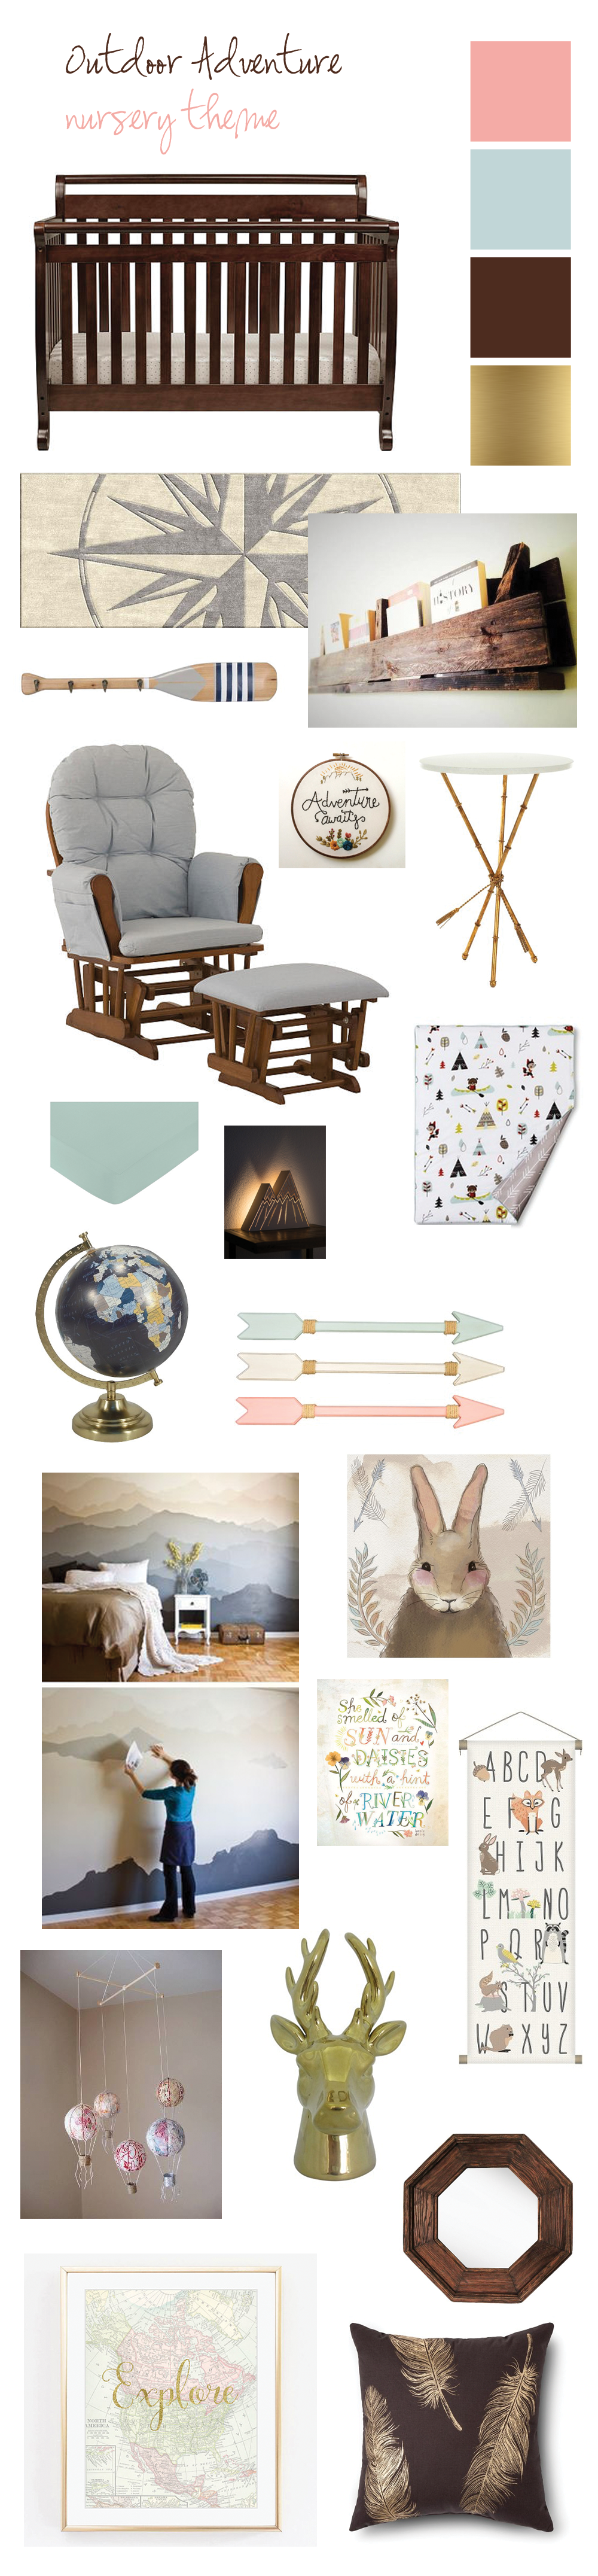 Baby Nursery Idea Outdoor Adventure Theme Mountains Woodland Creatures